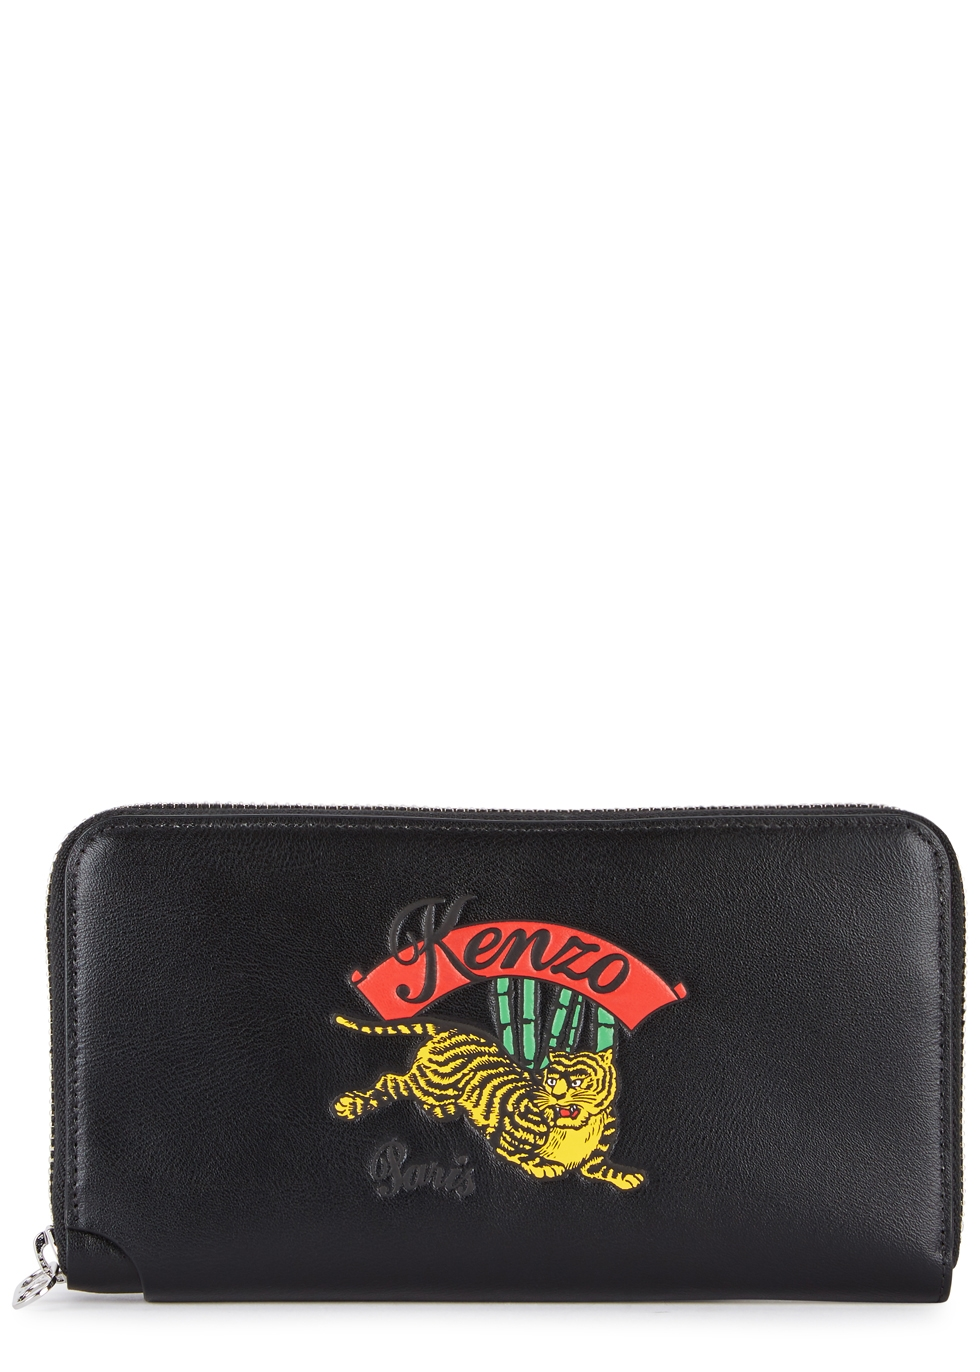 JUMPING TIGER BLACK LEATHER WALLET